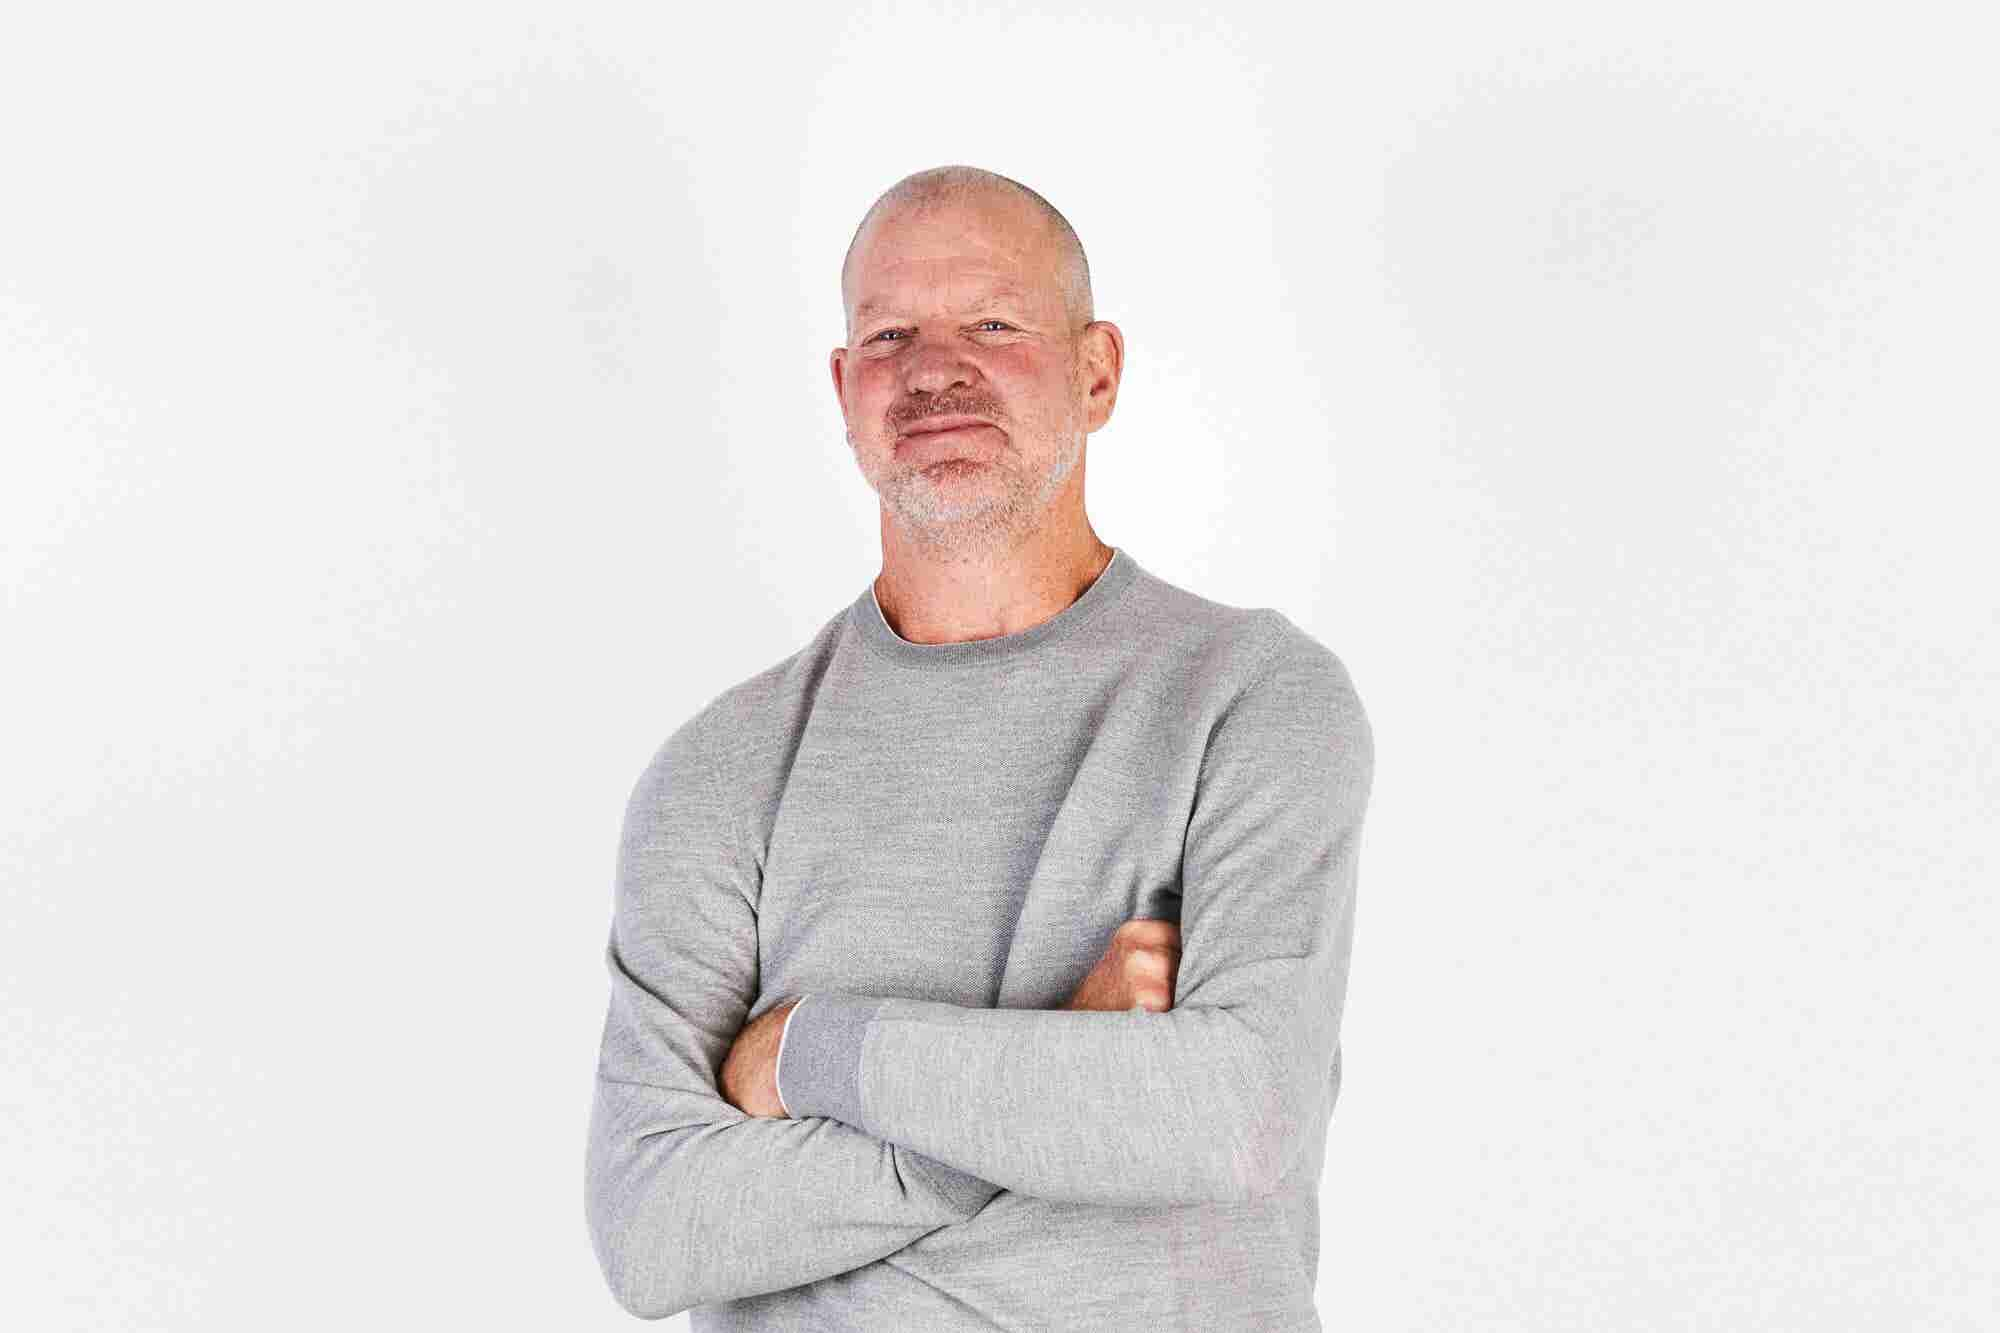 Lululemon Founder Chip Wilson Had a Falling Out With His Brand. Now He Wants Back In.